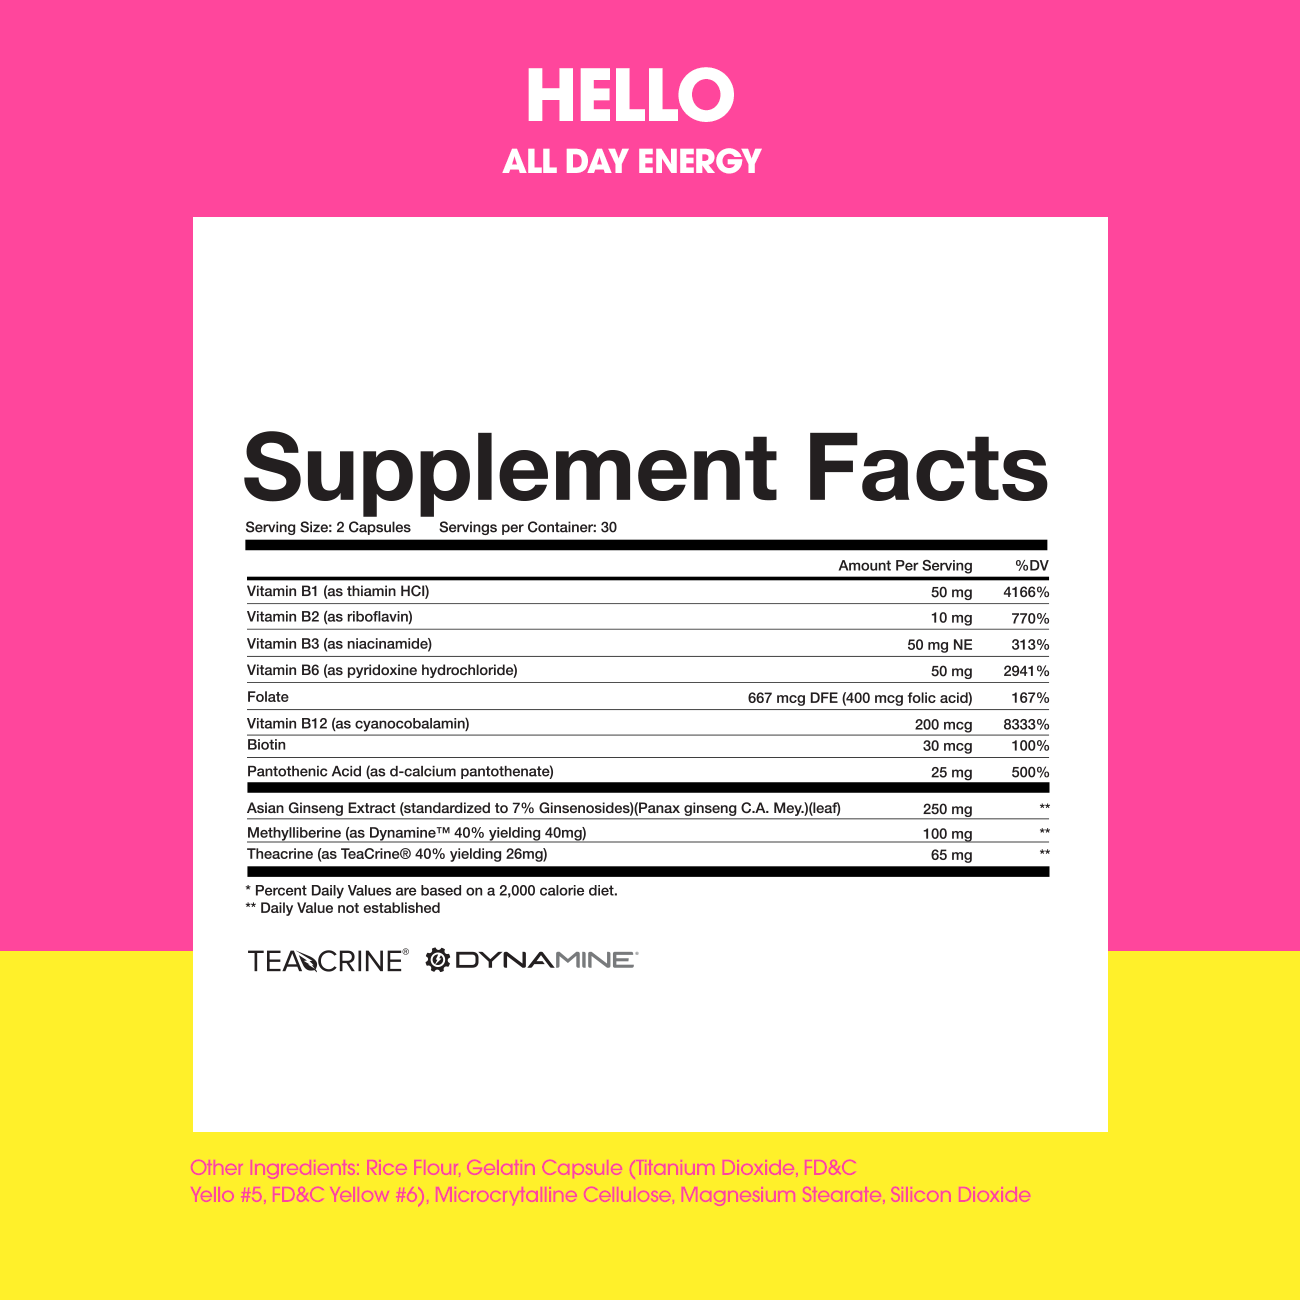 HELLO Ingredients & Supplement Facts Panel